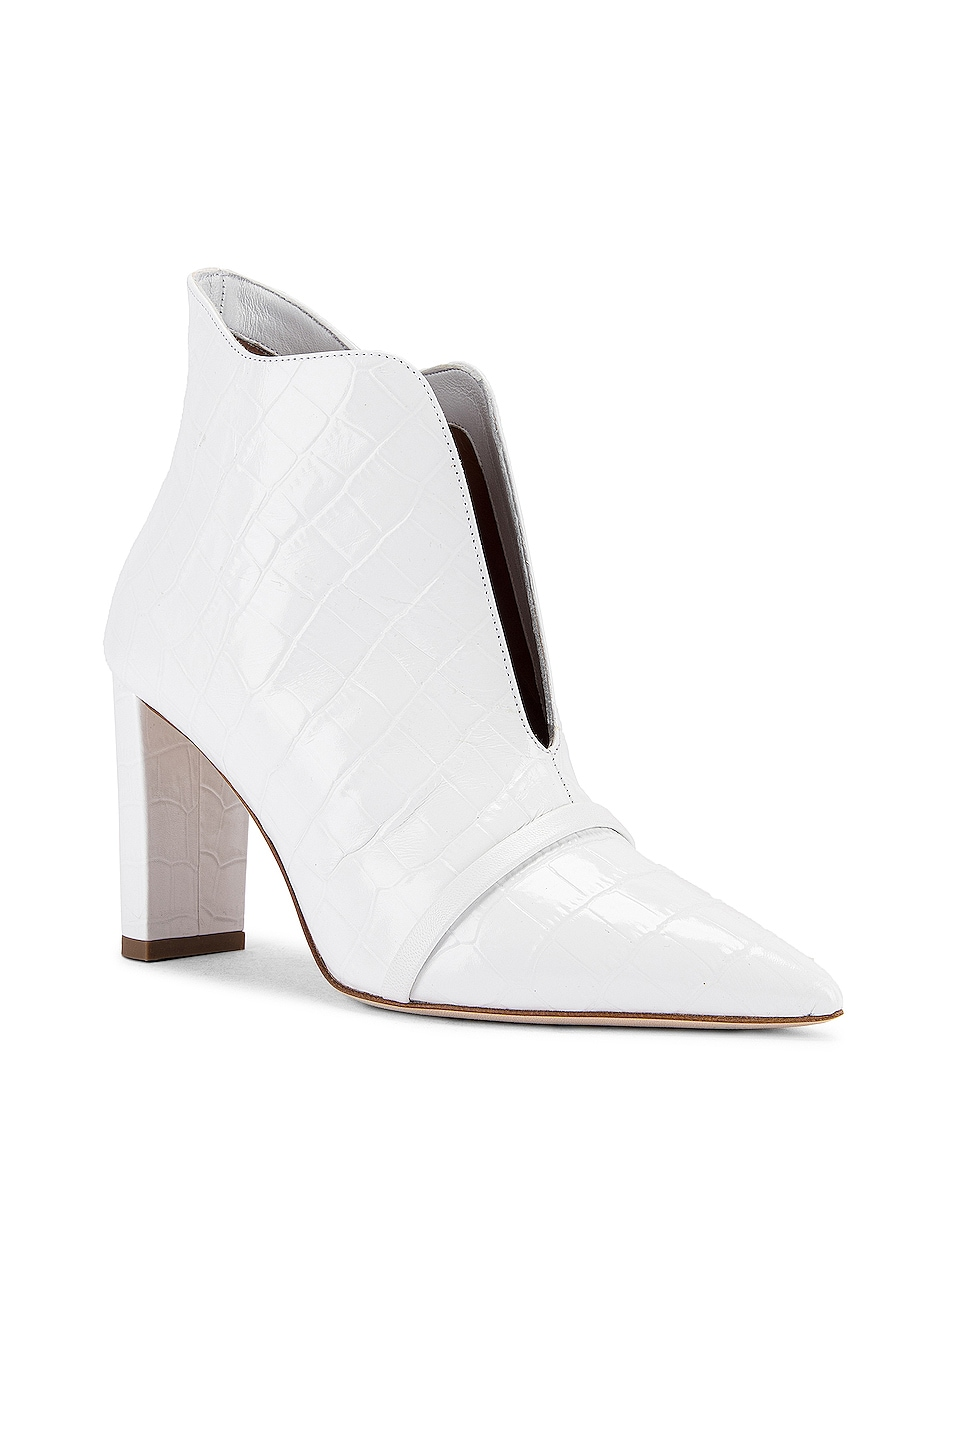 Image 2 of Malone Souliers Clara 85 Heel in White